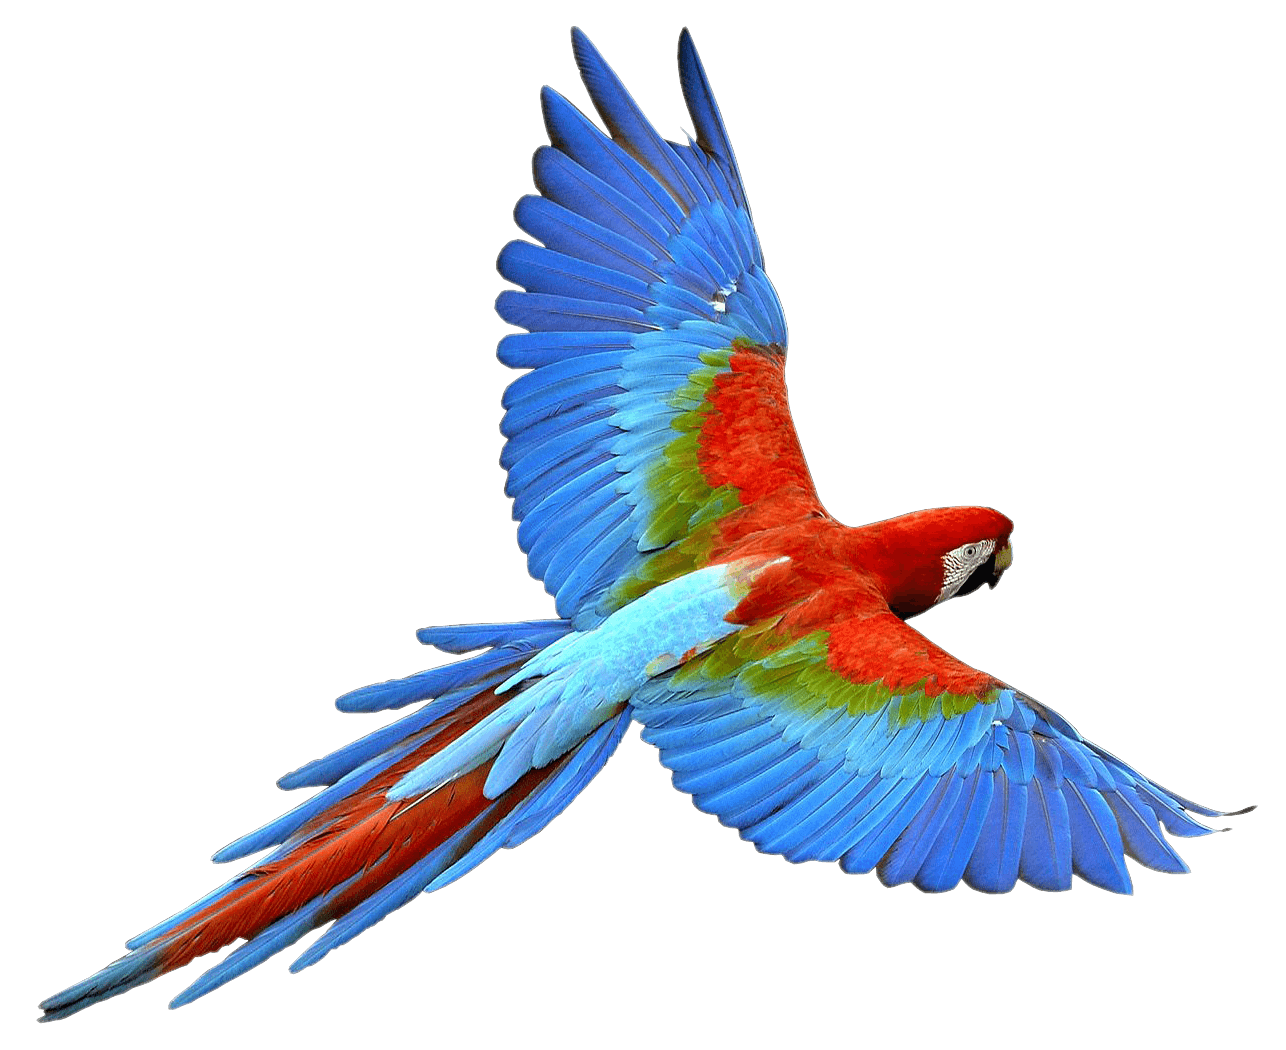 Macaw Png - Flying Parrot Red Blue